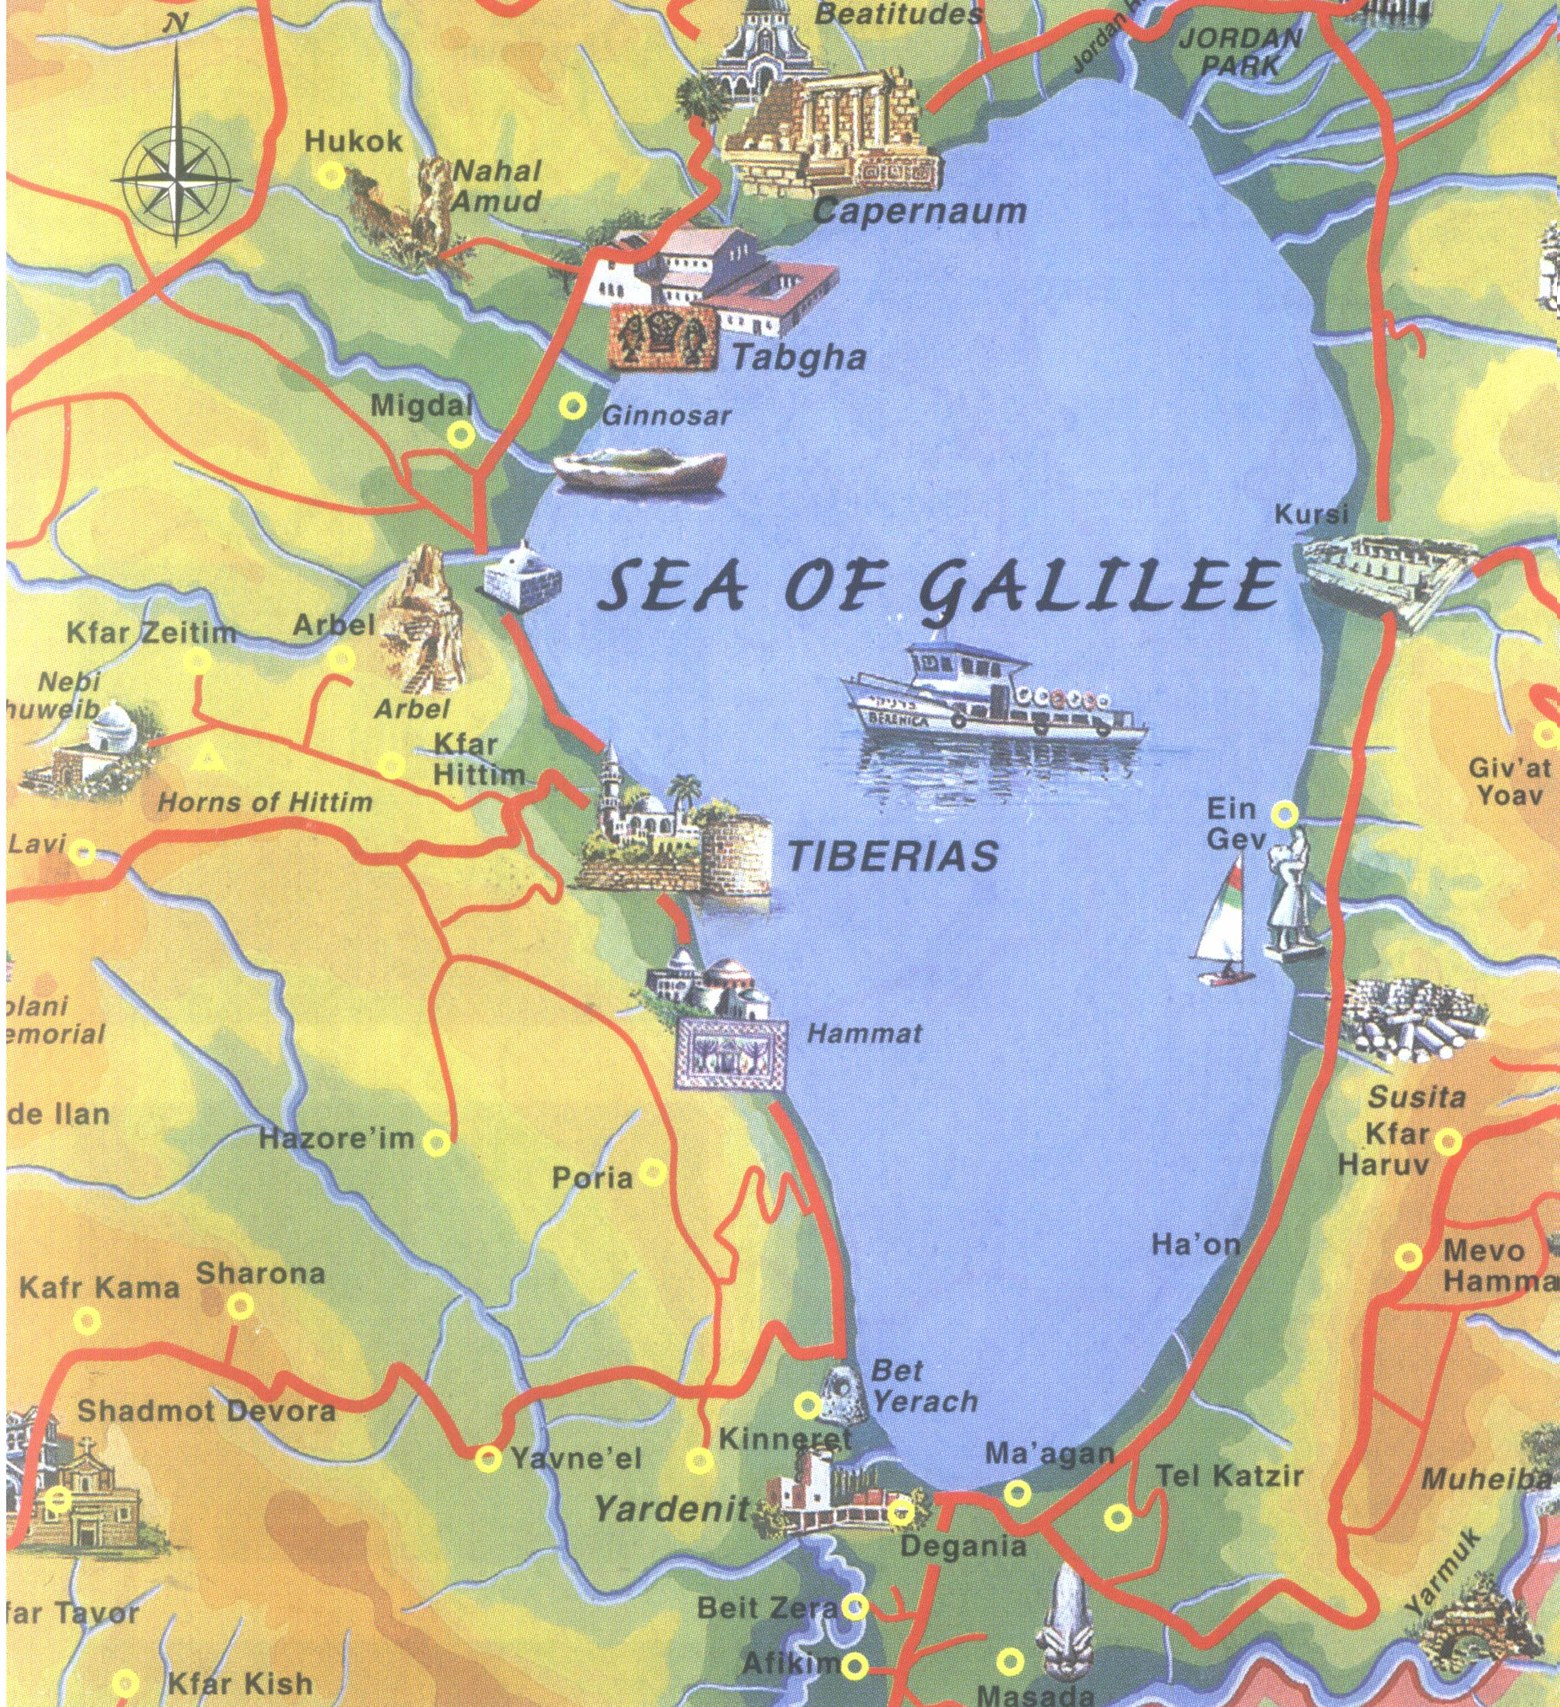 Sea of Galilee Map Touring Routes